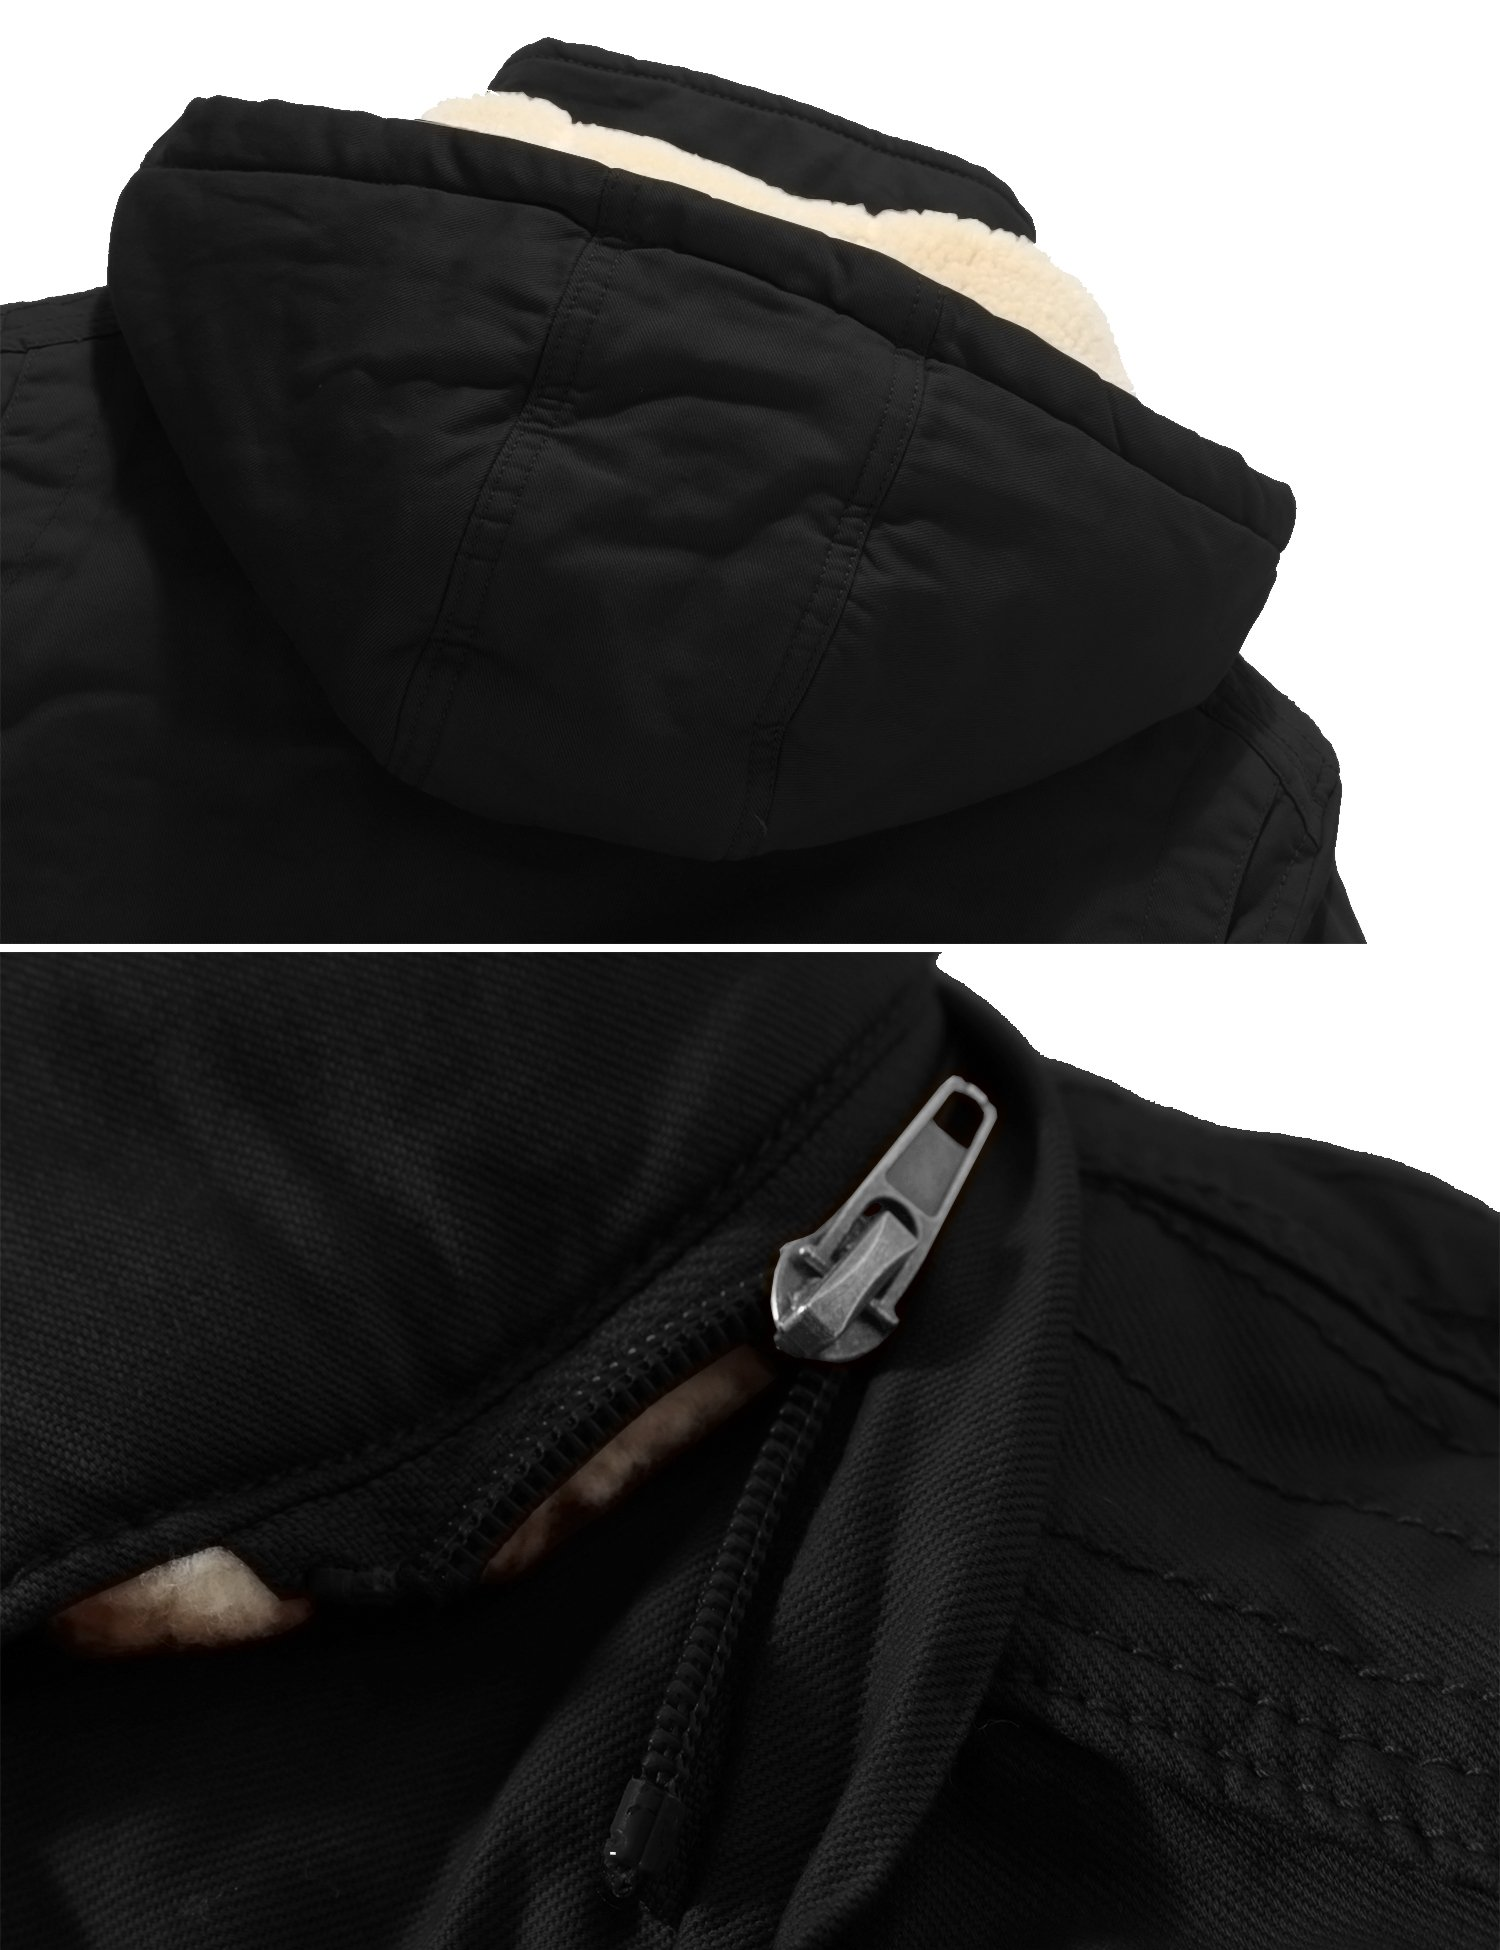 Wantdo Women's Winter Thicken Jacket Cotton Coat with Removable Hood (Black, US M) by Wantdo (Image #4)